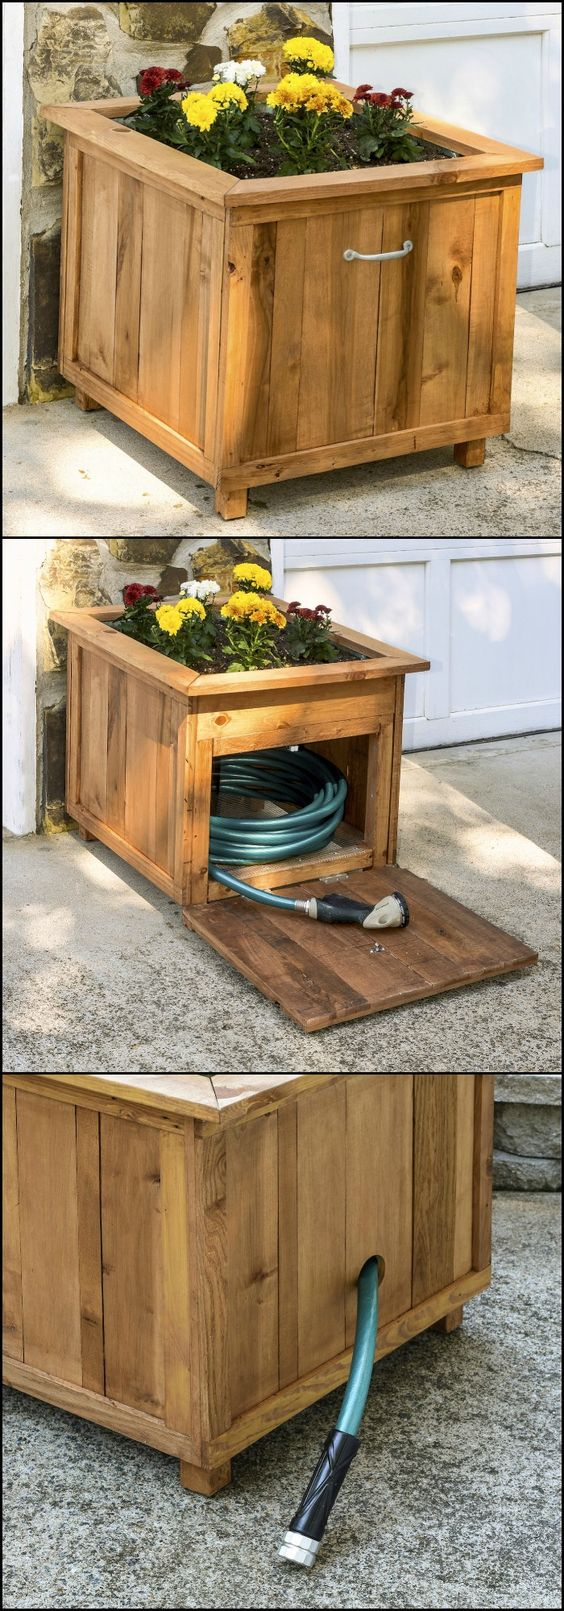 Hose Storage Garden Hose And Yards On Pinterest